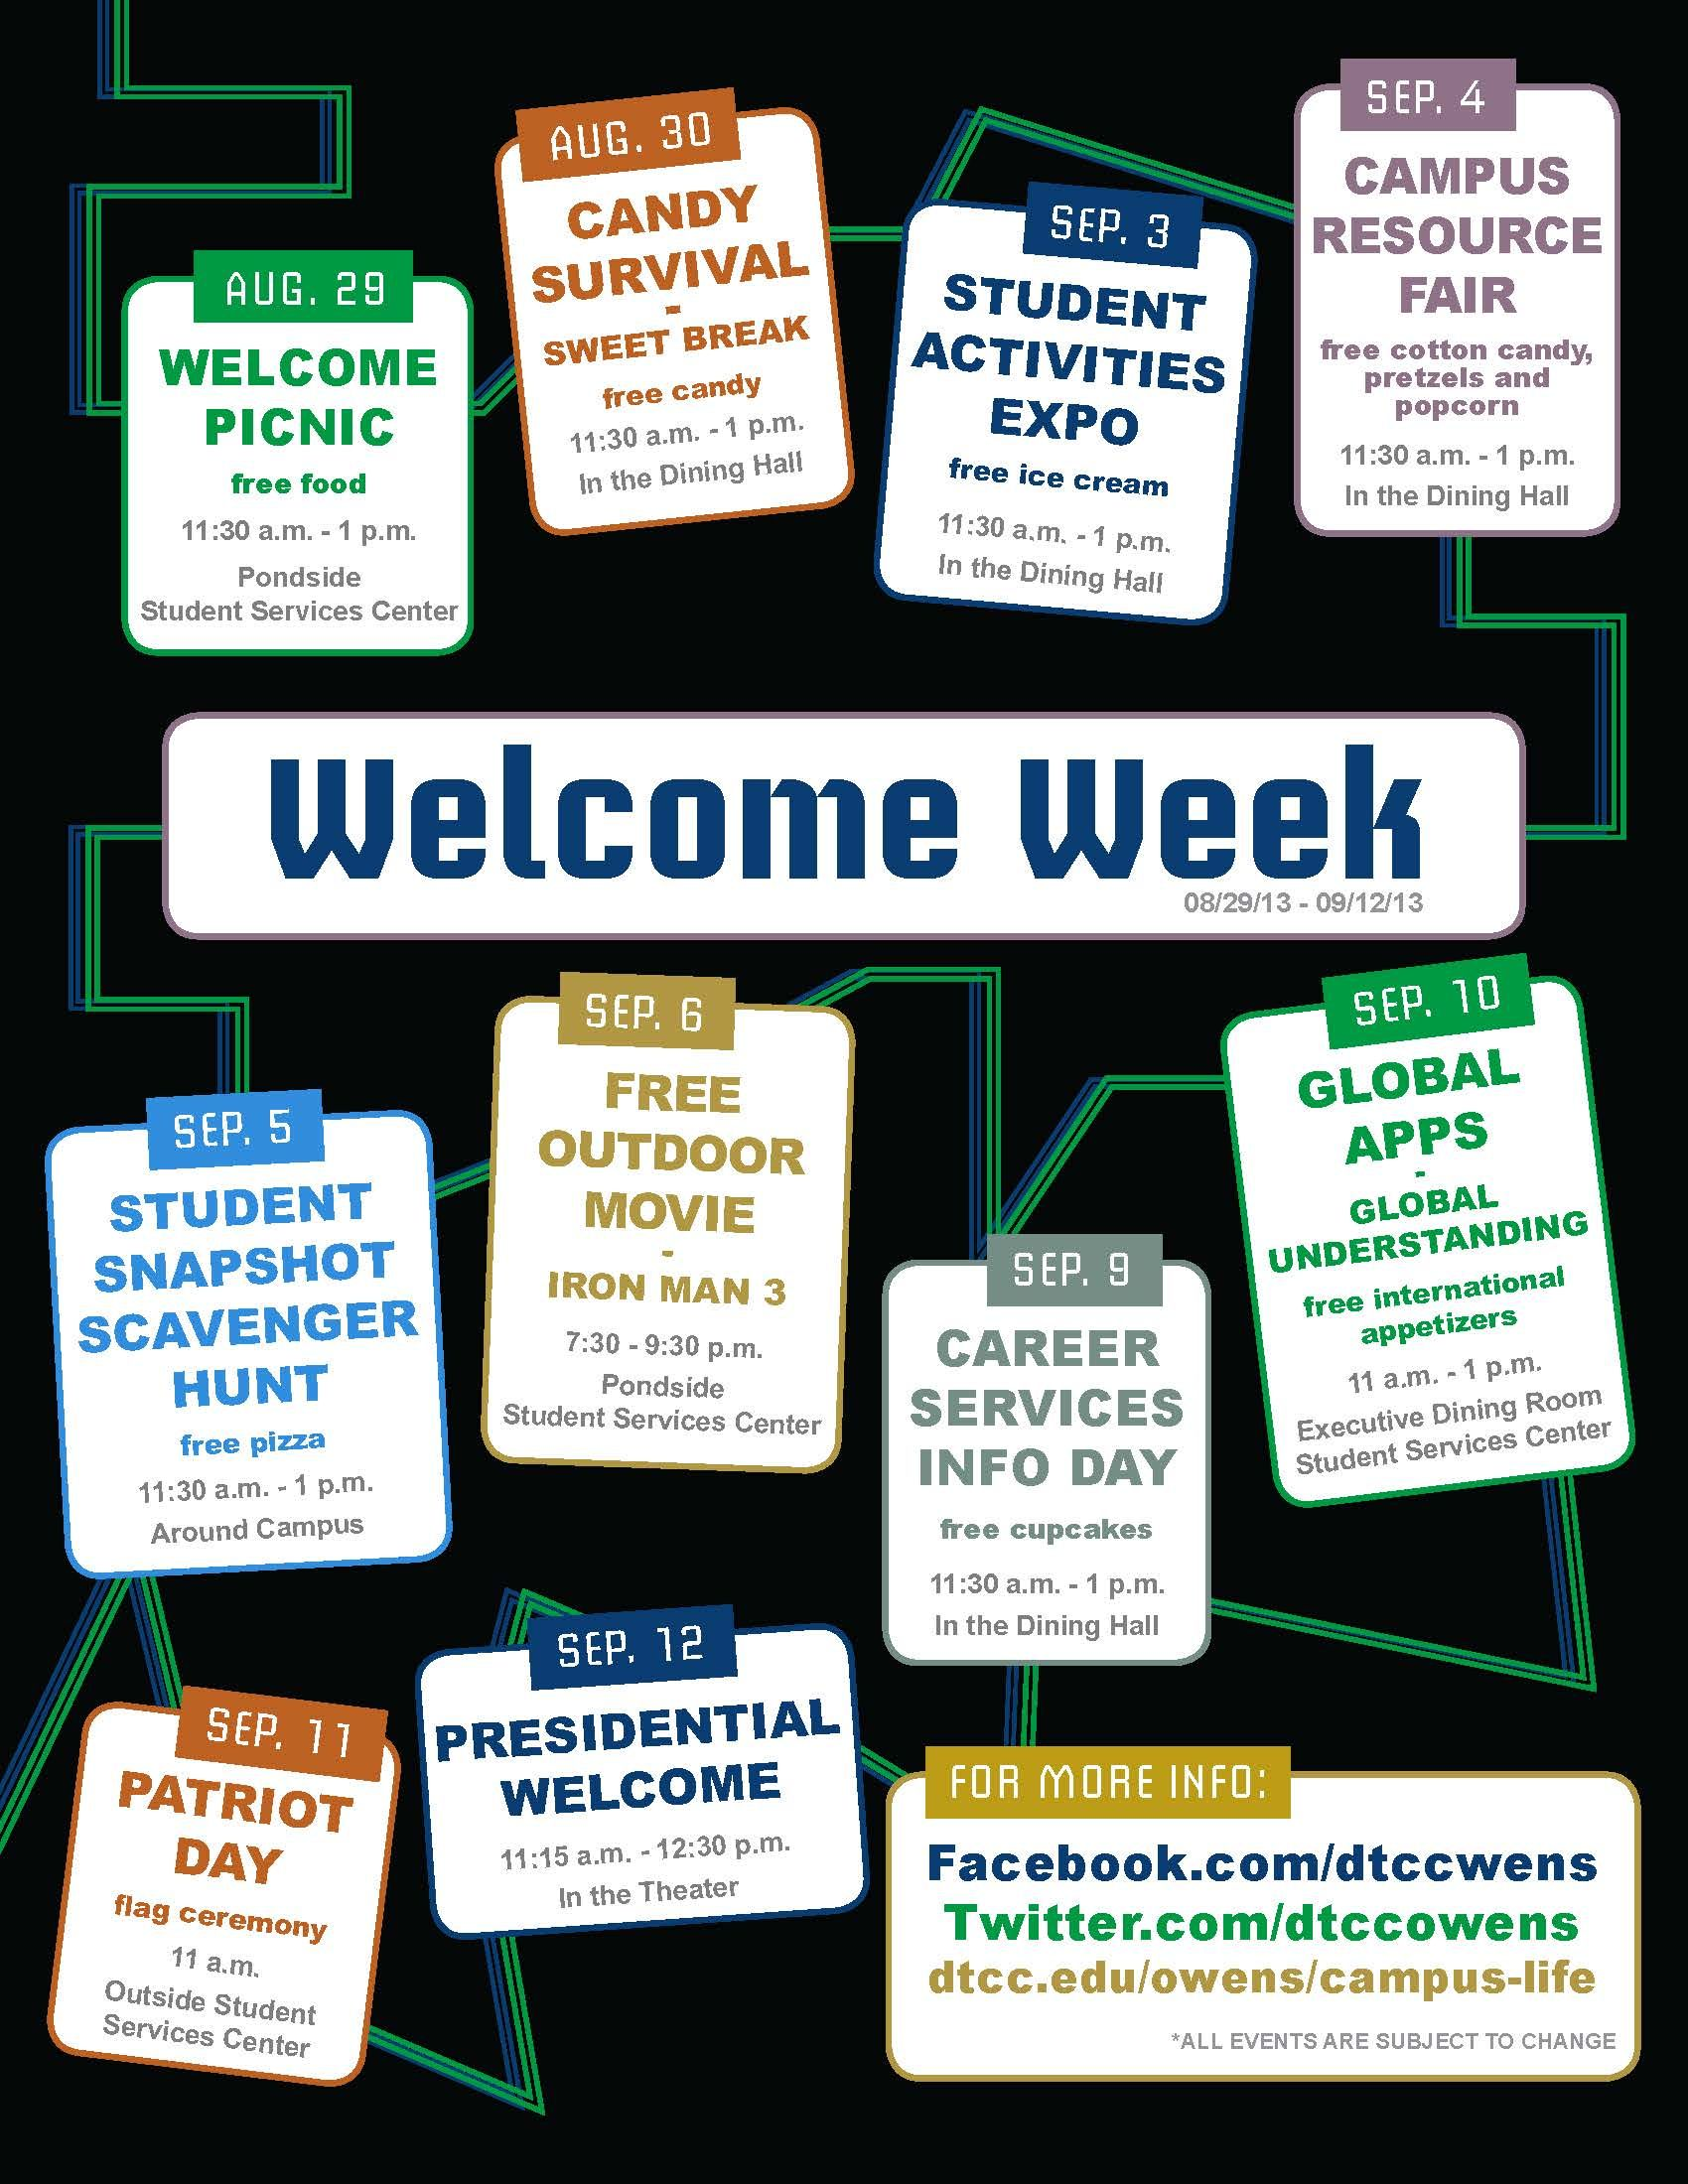 welcome week events are designed to help you become part of the